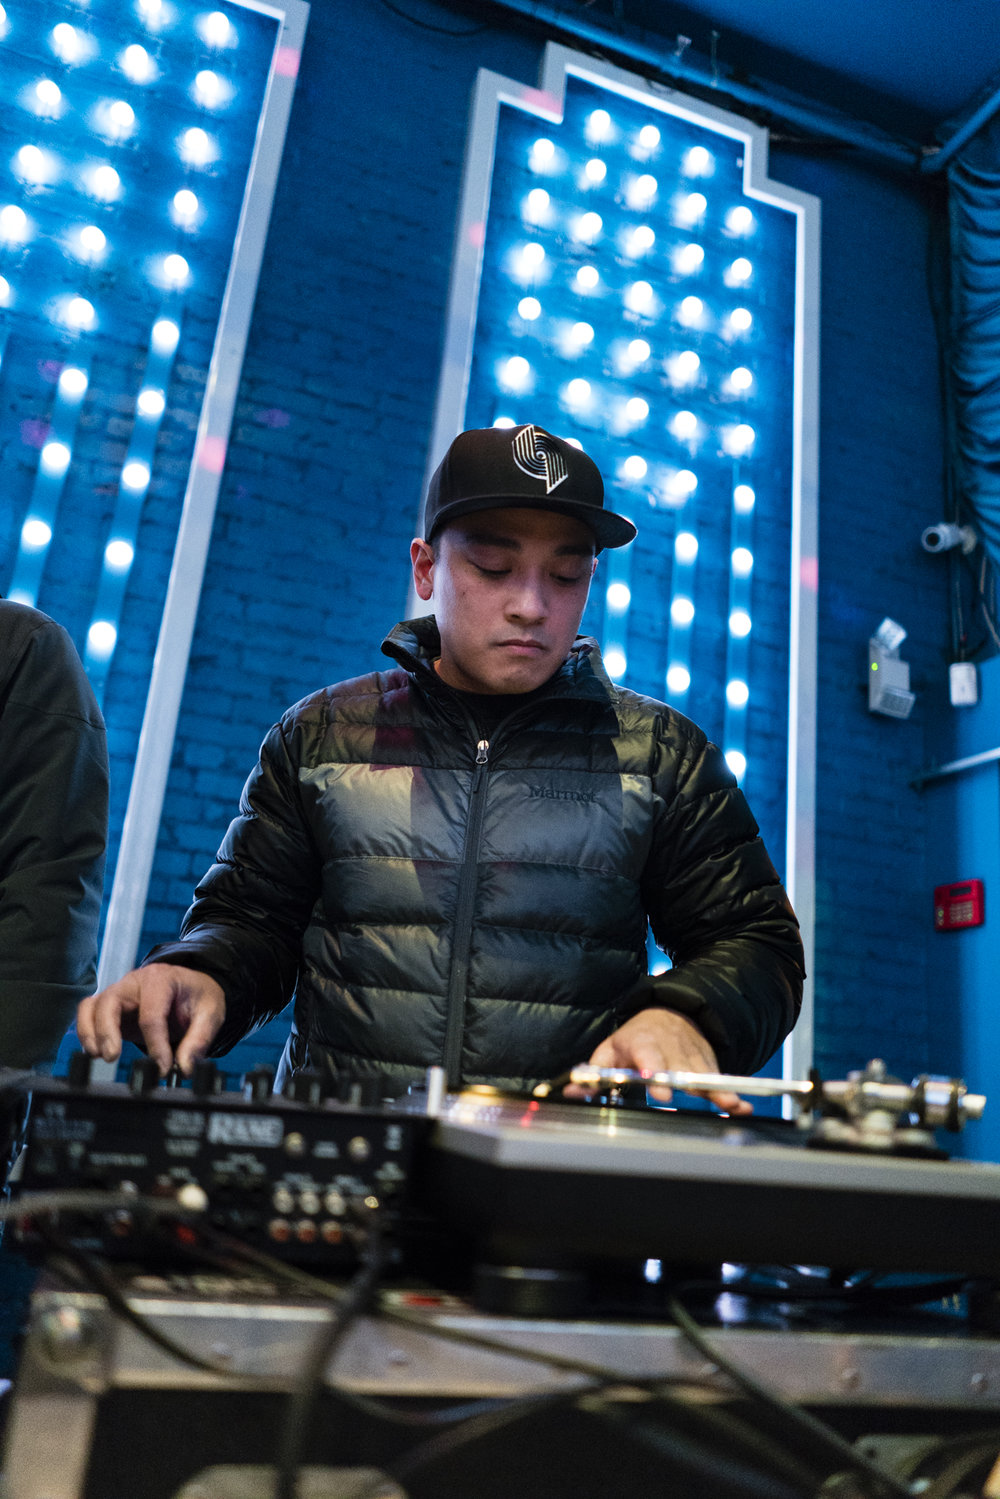 2017_02_02_Skratch Lounge_0070_Export.jpg